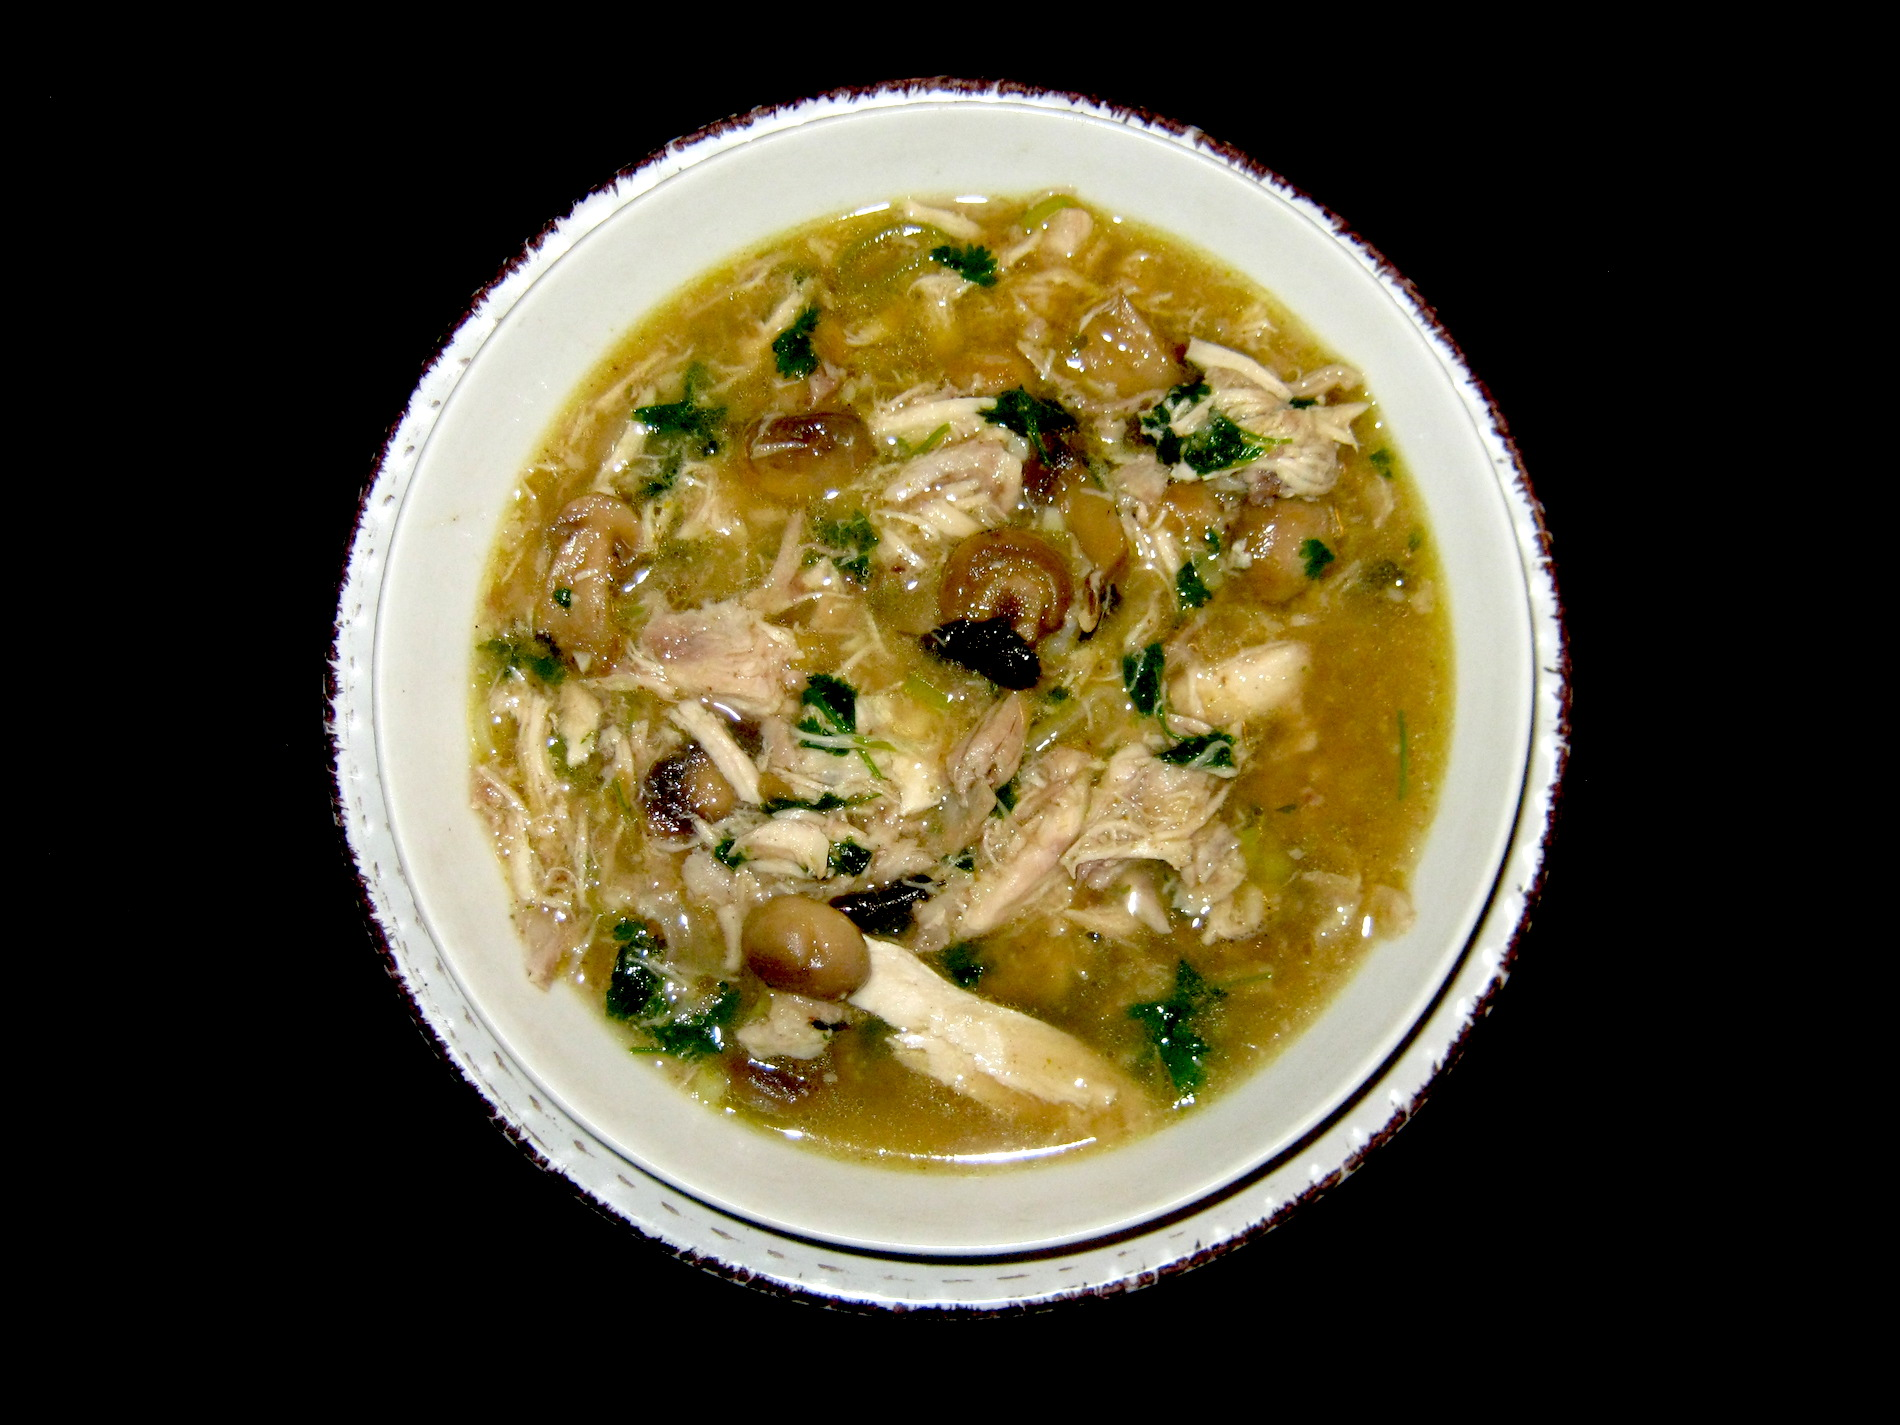 Thai chicken and mushroom soup in a white bowl